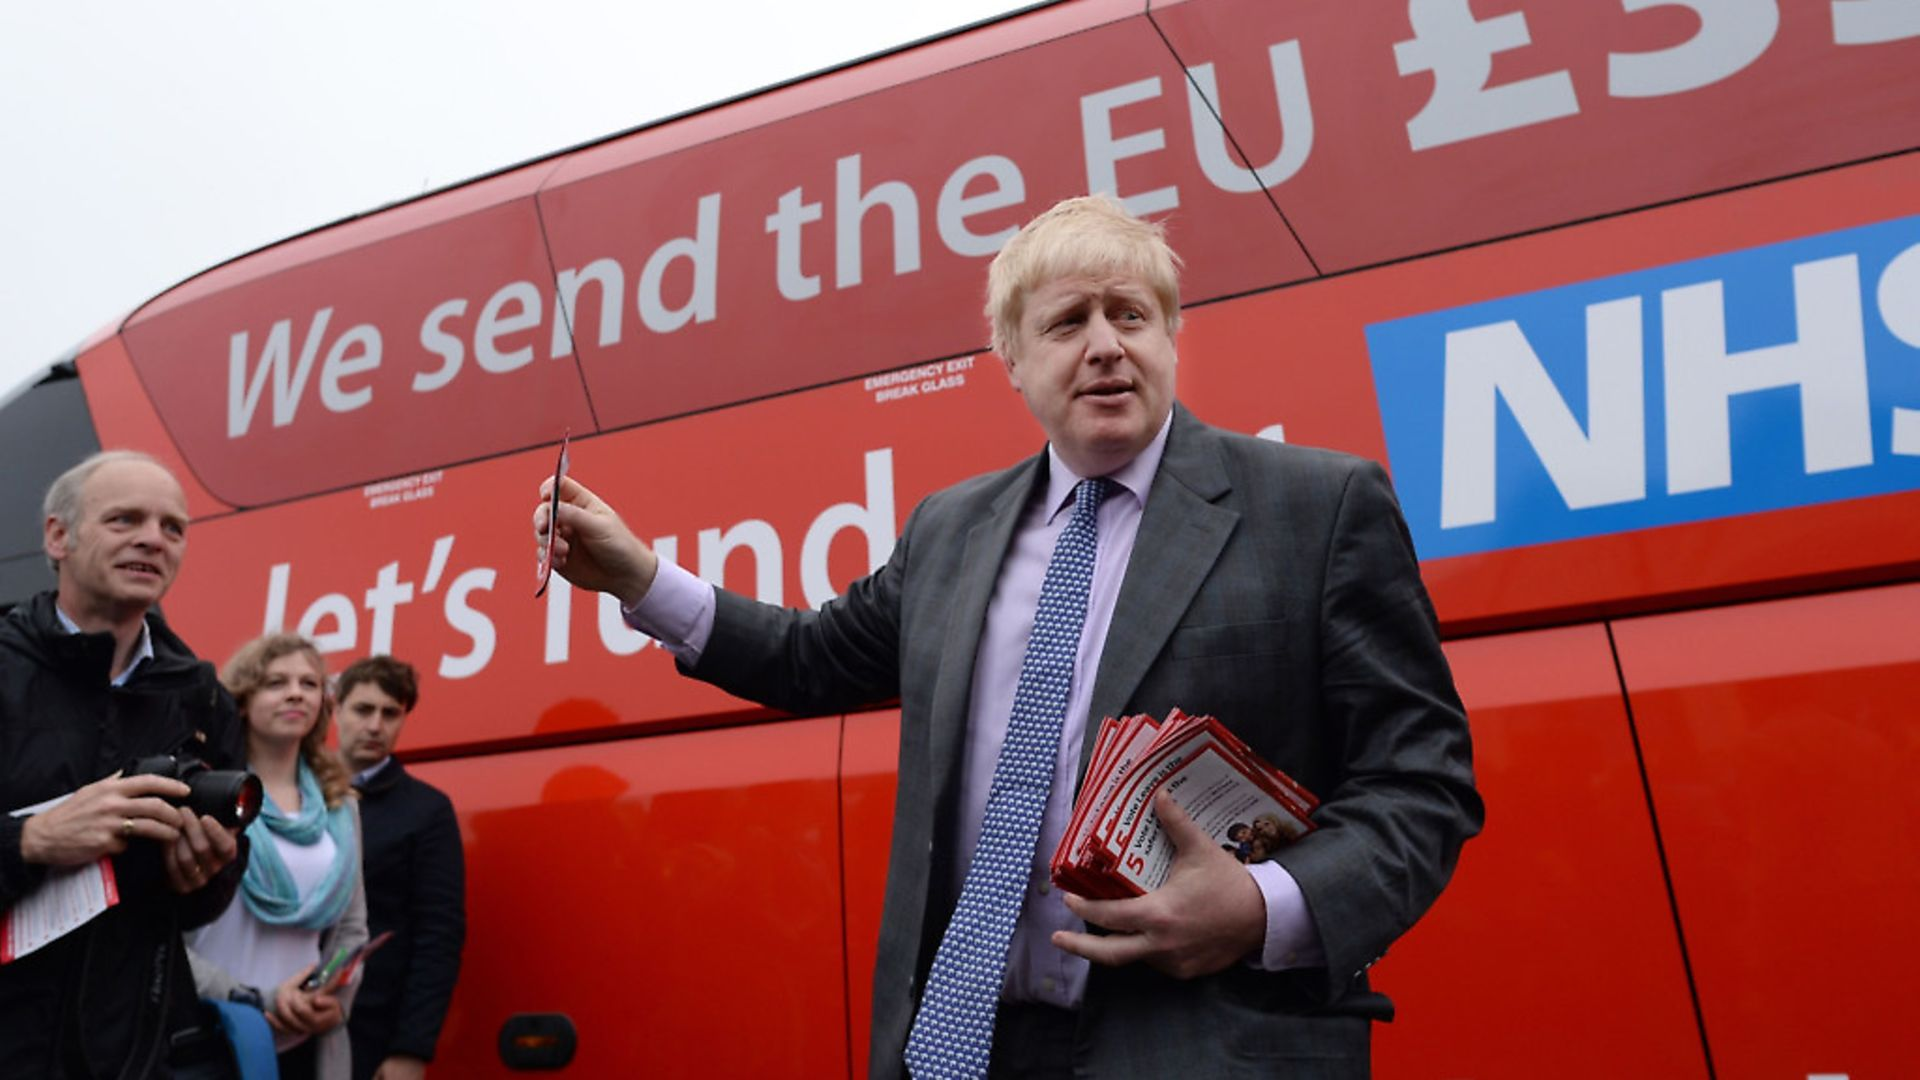 Boris Johnson before he boards the Vote Leave campaign bus in Truro, Cornwall. Photograph: Stefan Rousseau/PA. - Credit: PA Archive/PA Images